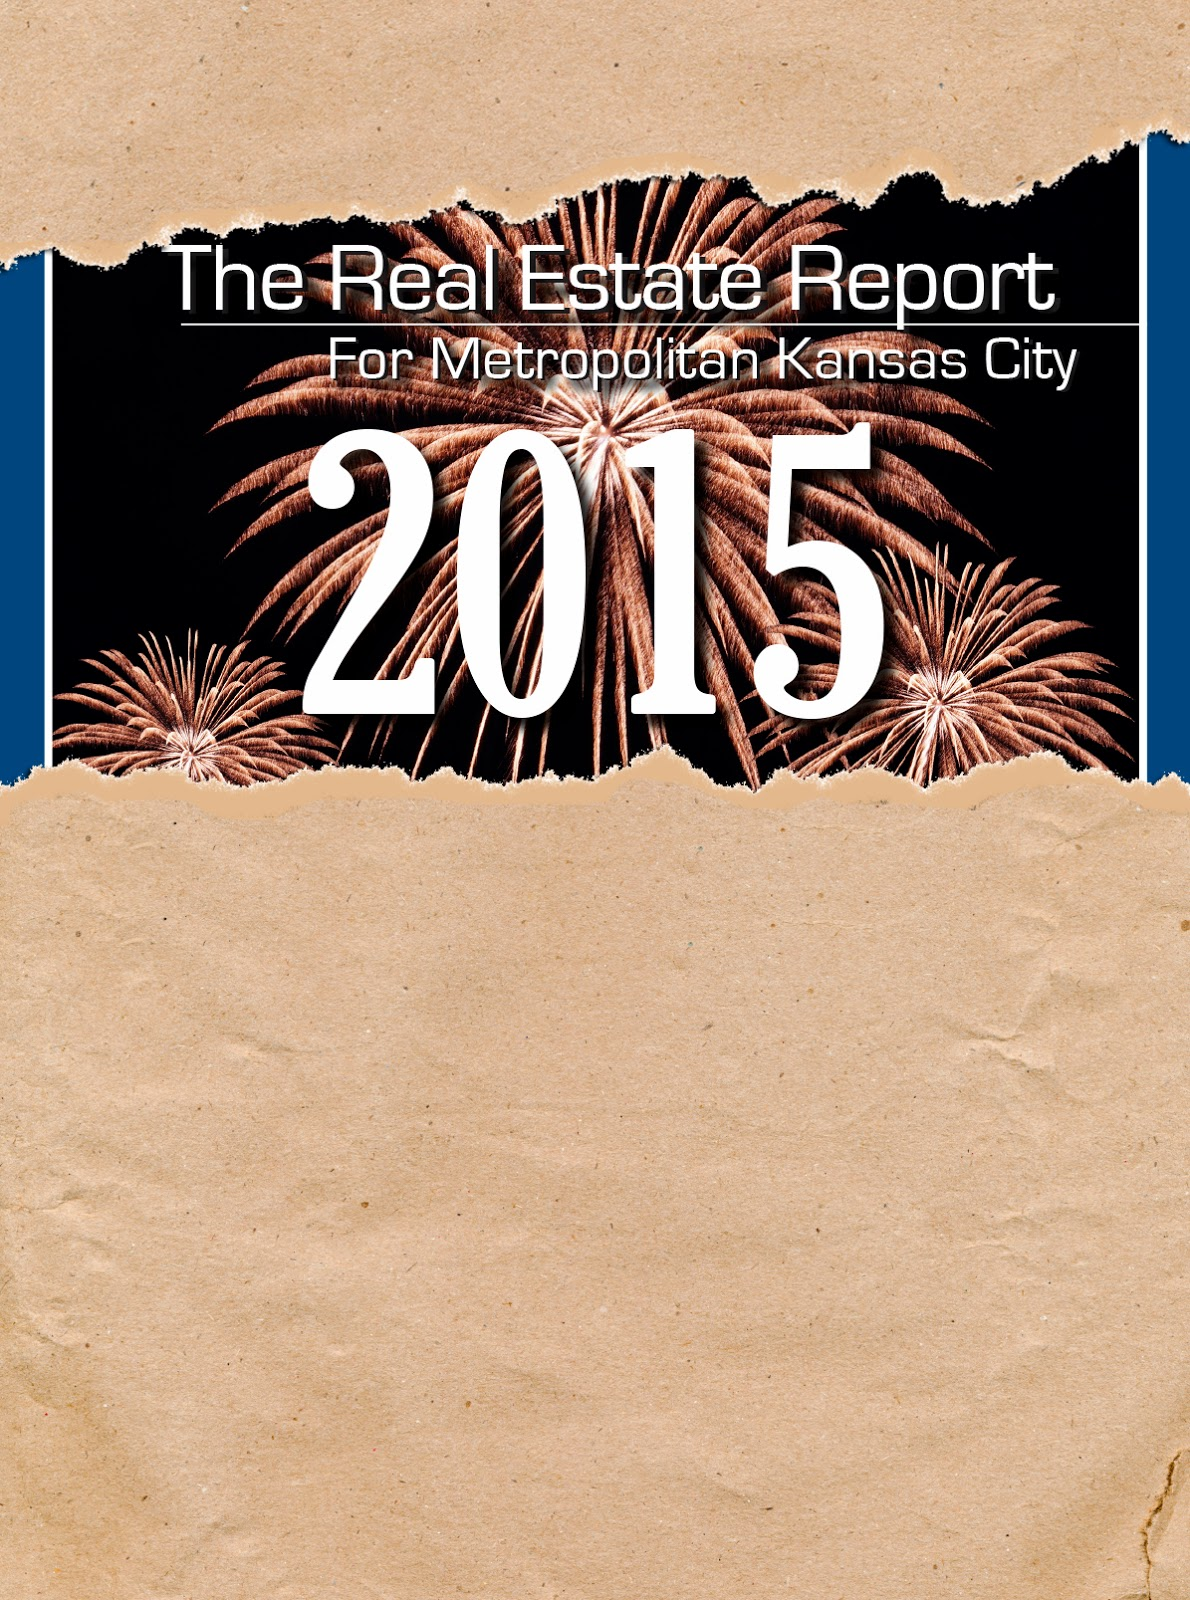 Market Report 2015 Sneak Peak - Day 5 Multifamily